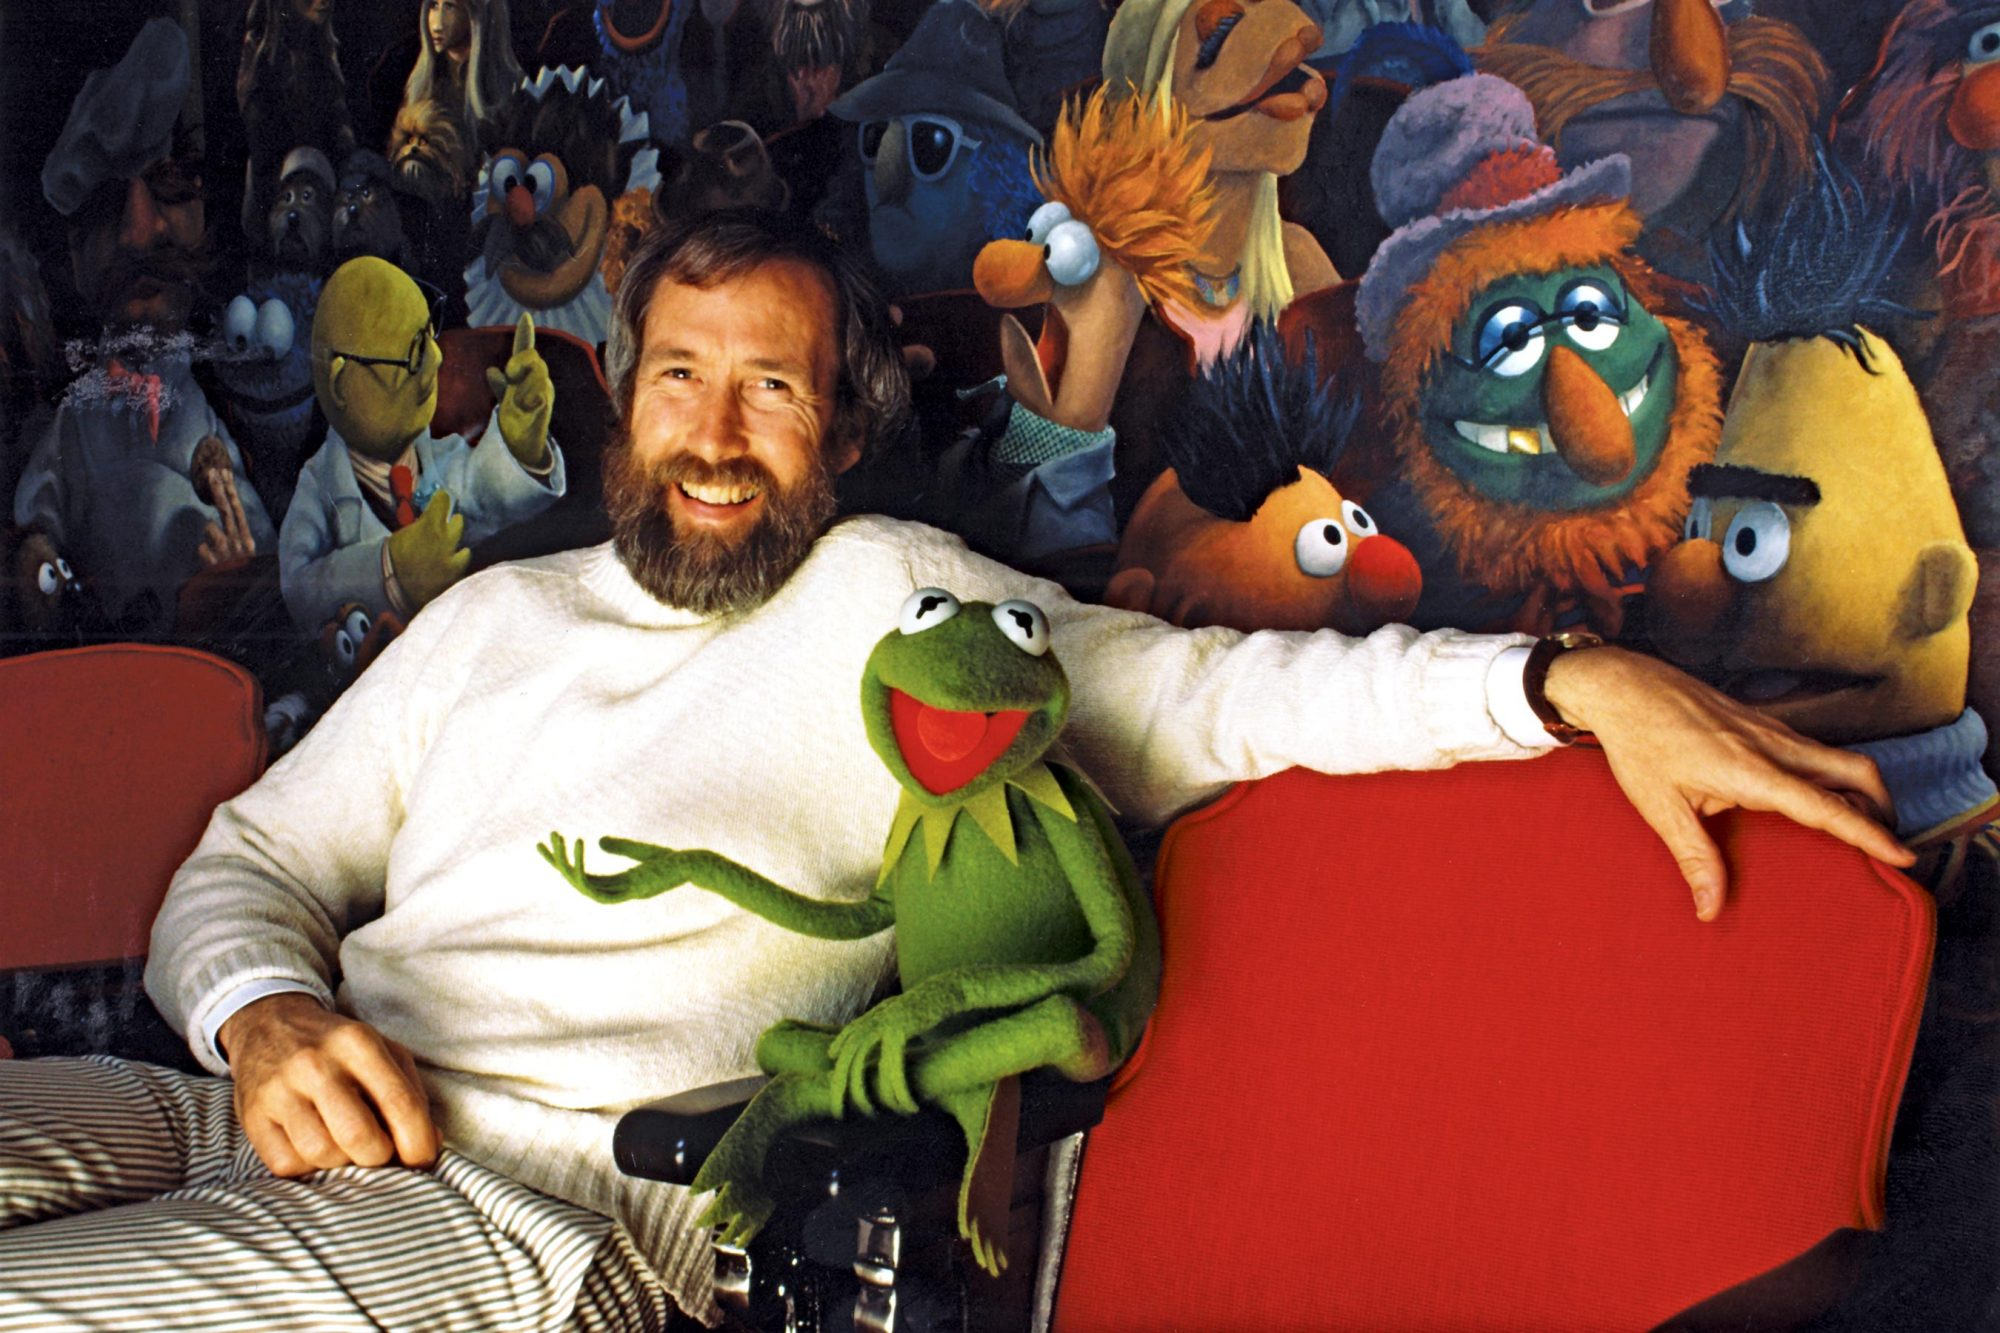 Henson and his characters